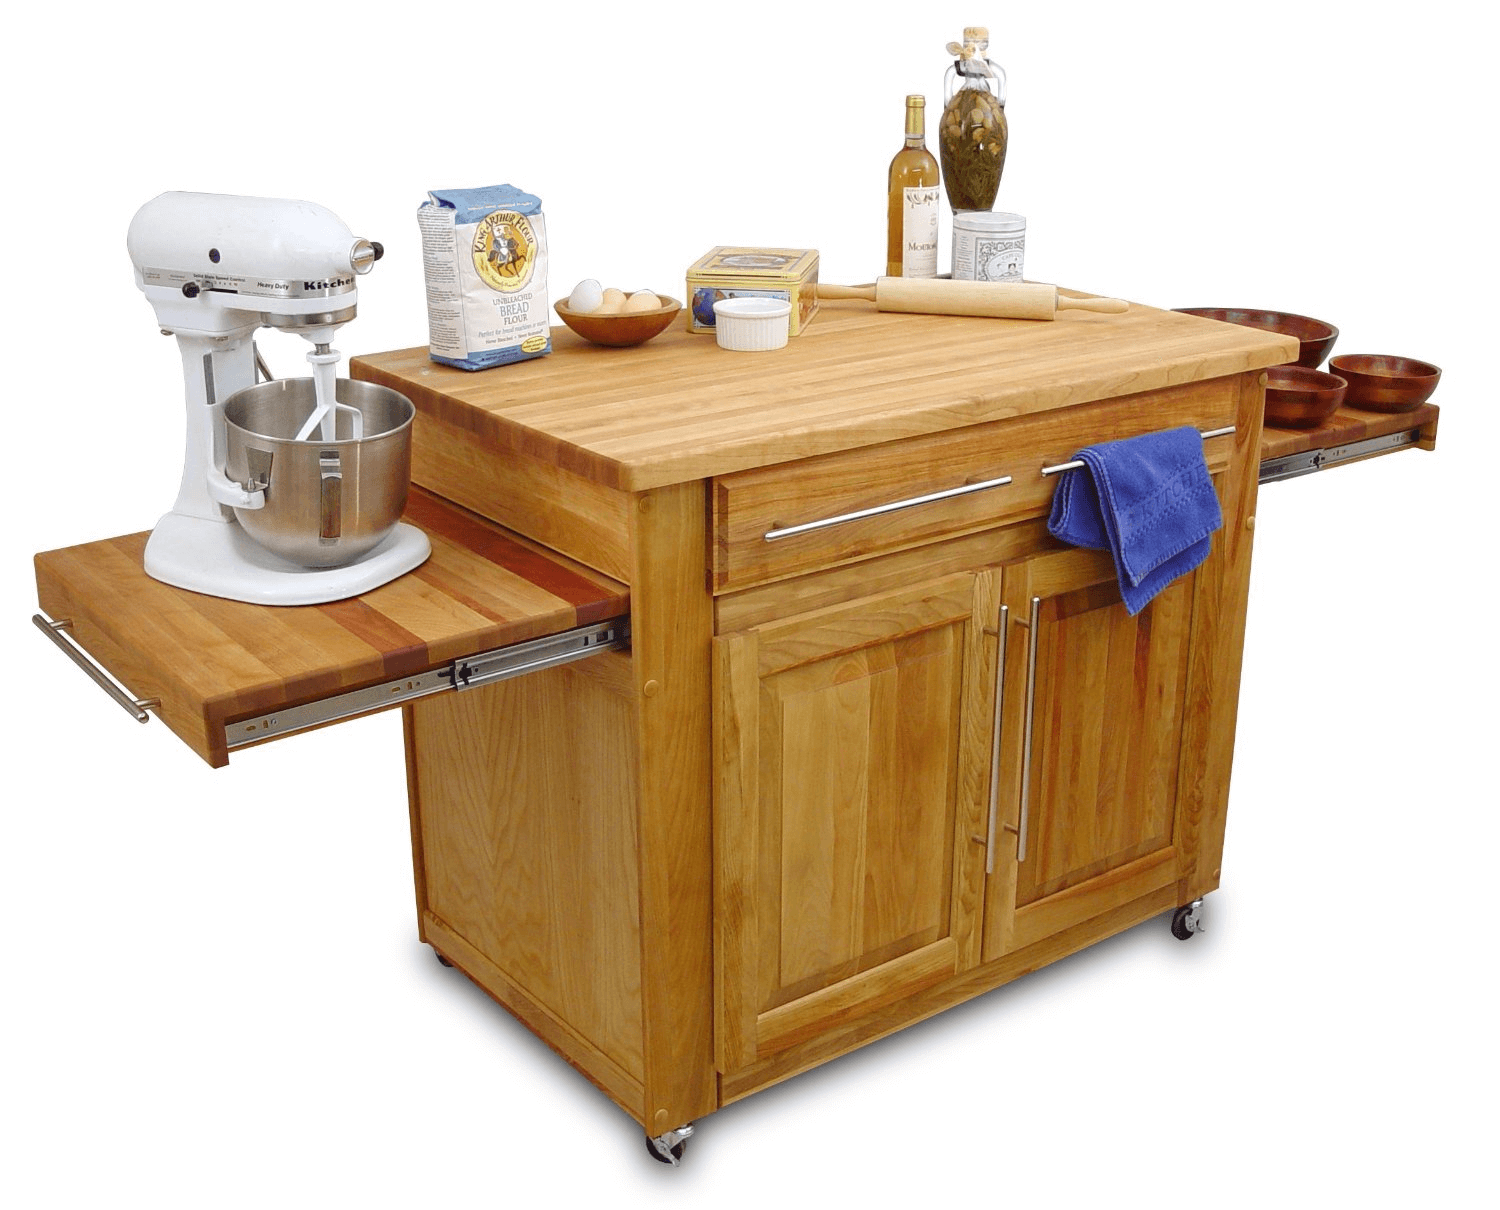 kitchen islands with drop leaf the jaw dropping easiness kitchen island on wheels with drop leaf 2806